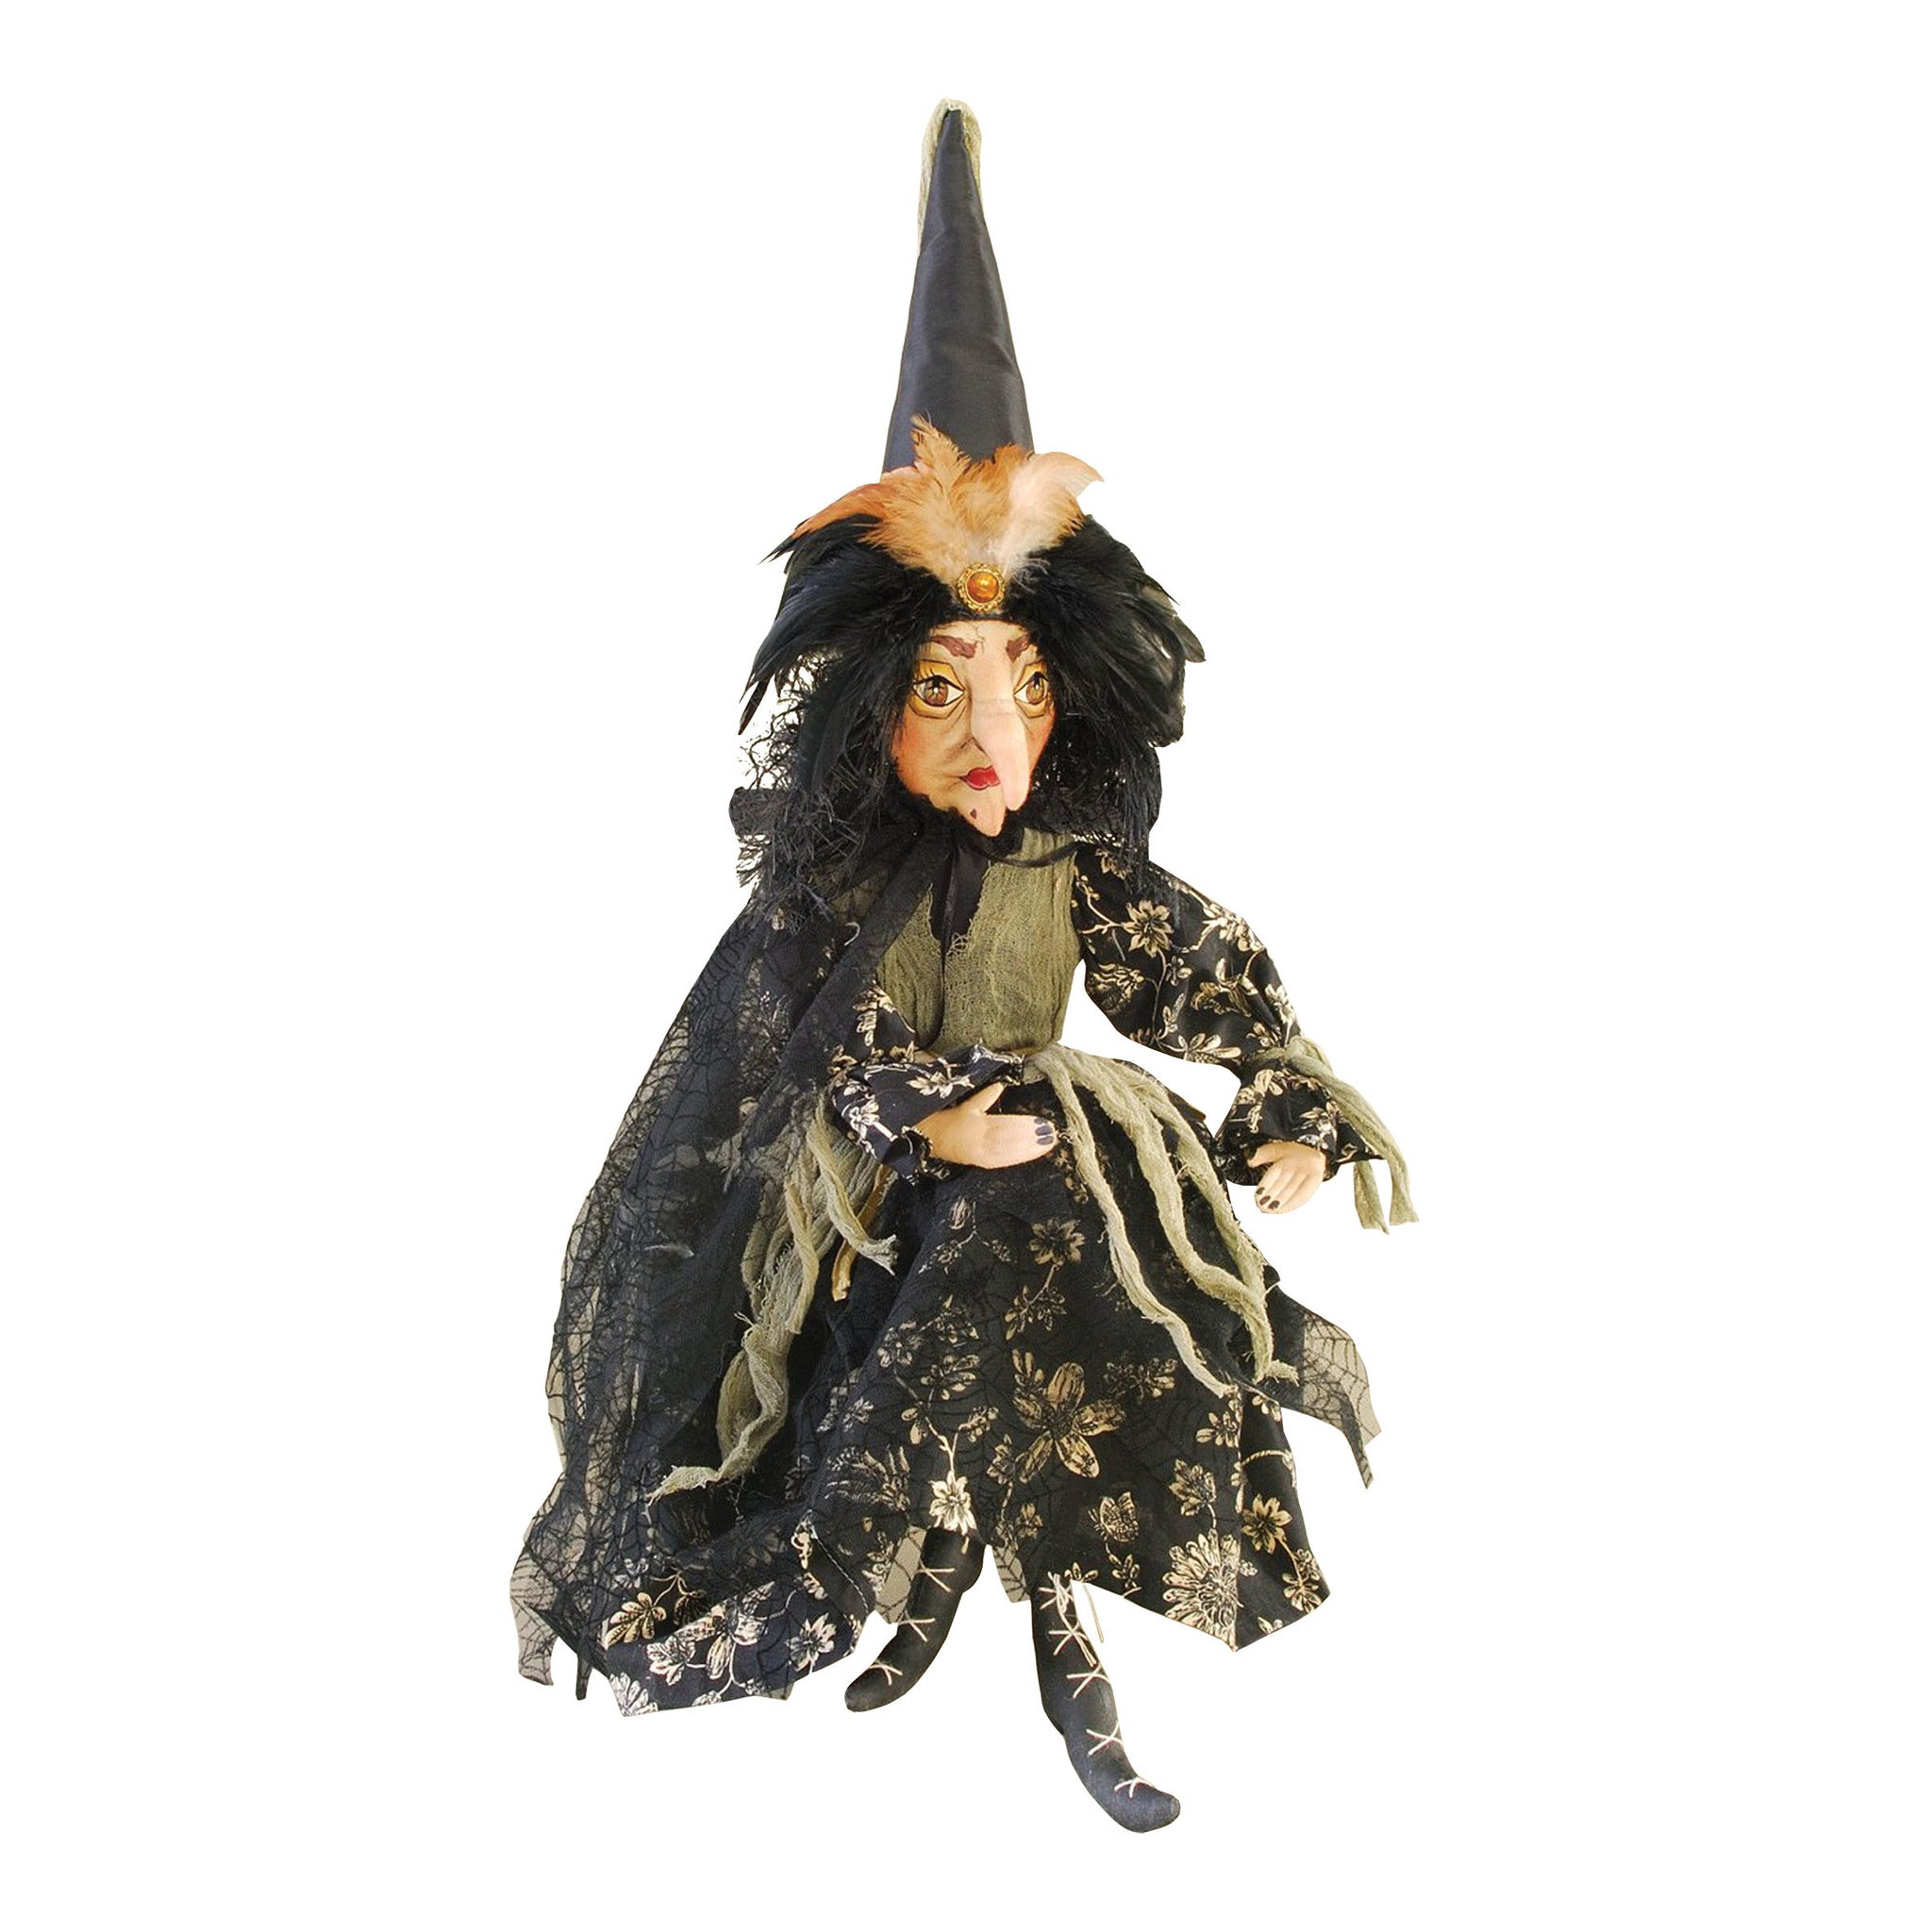 Thelma Witch Cloth Doll by Joe Spencer